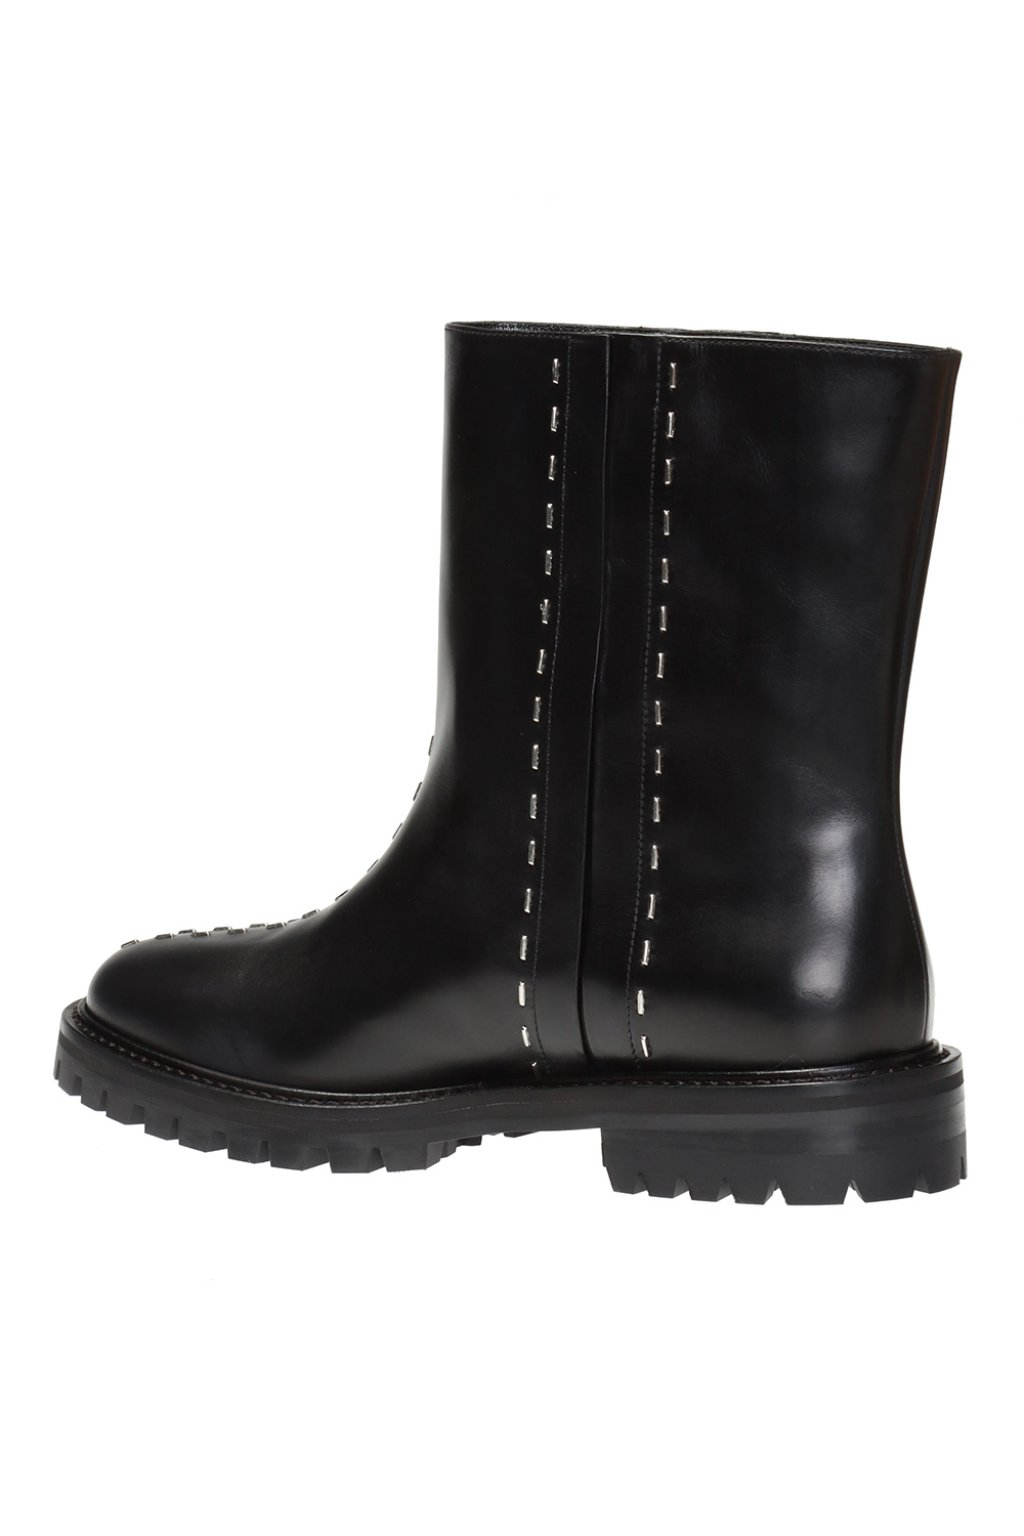 Alaia Ankle boots with metal appliques